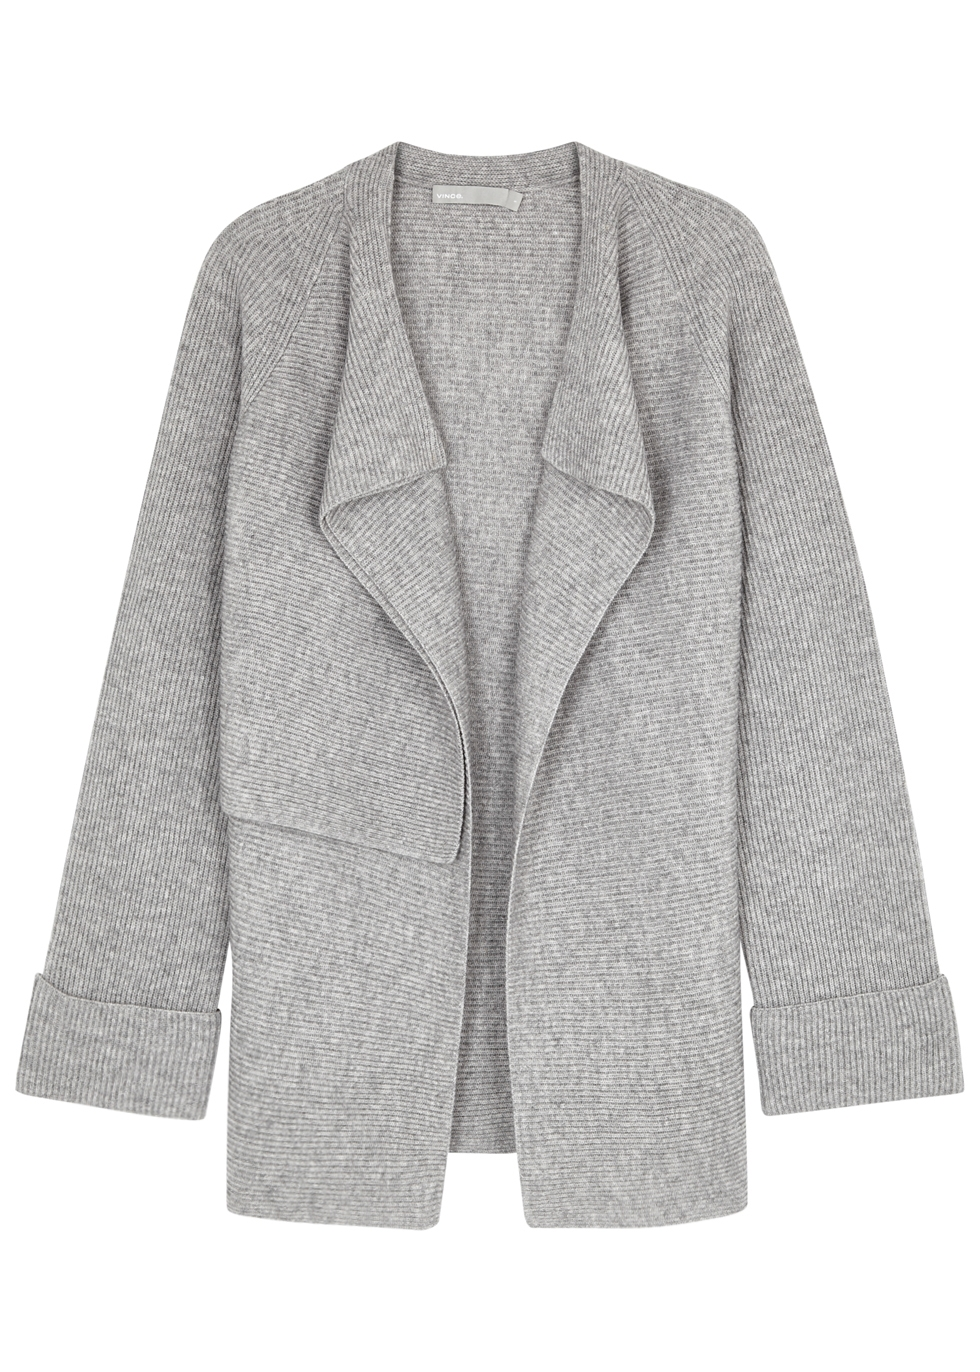 GREY WOOL AND CASHMERE-BLEND CARDIGAN